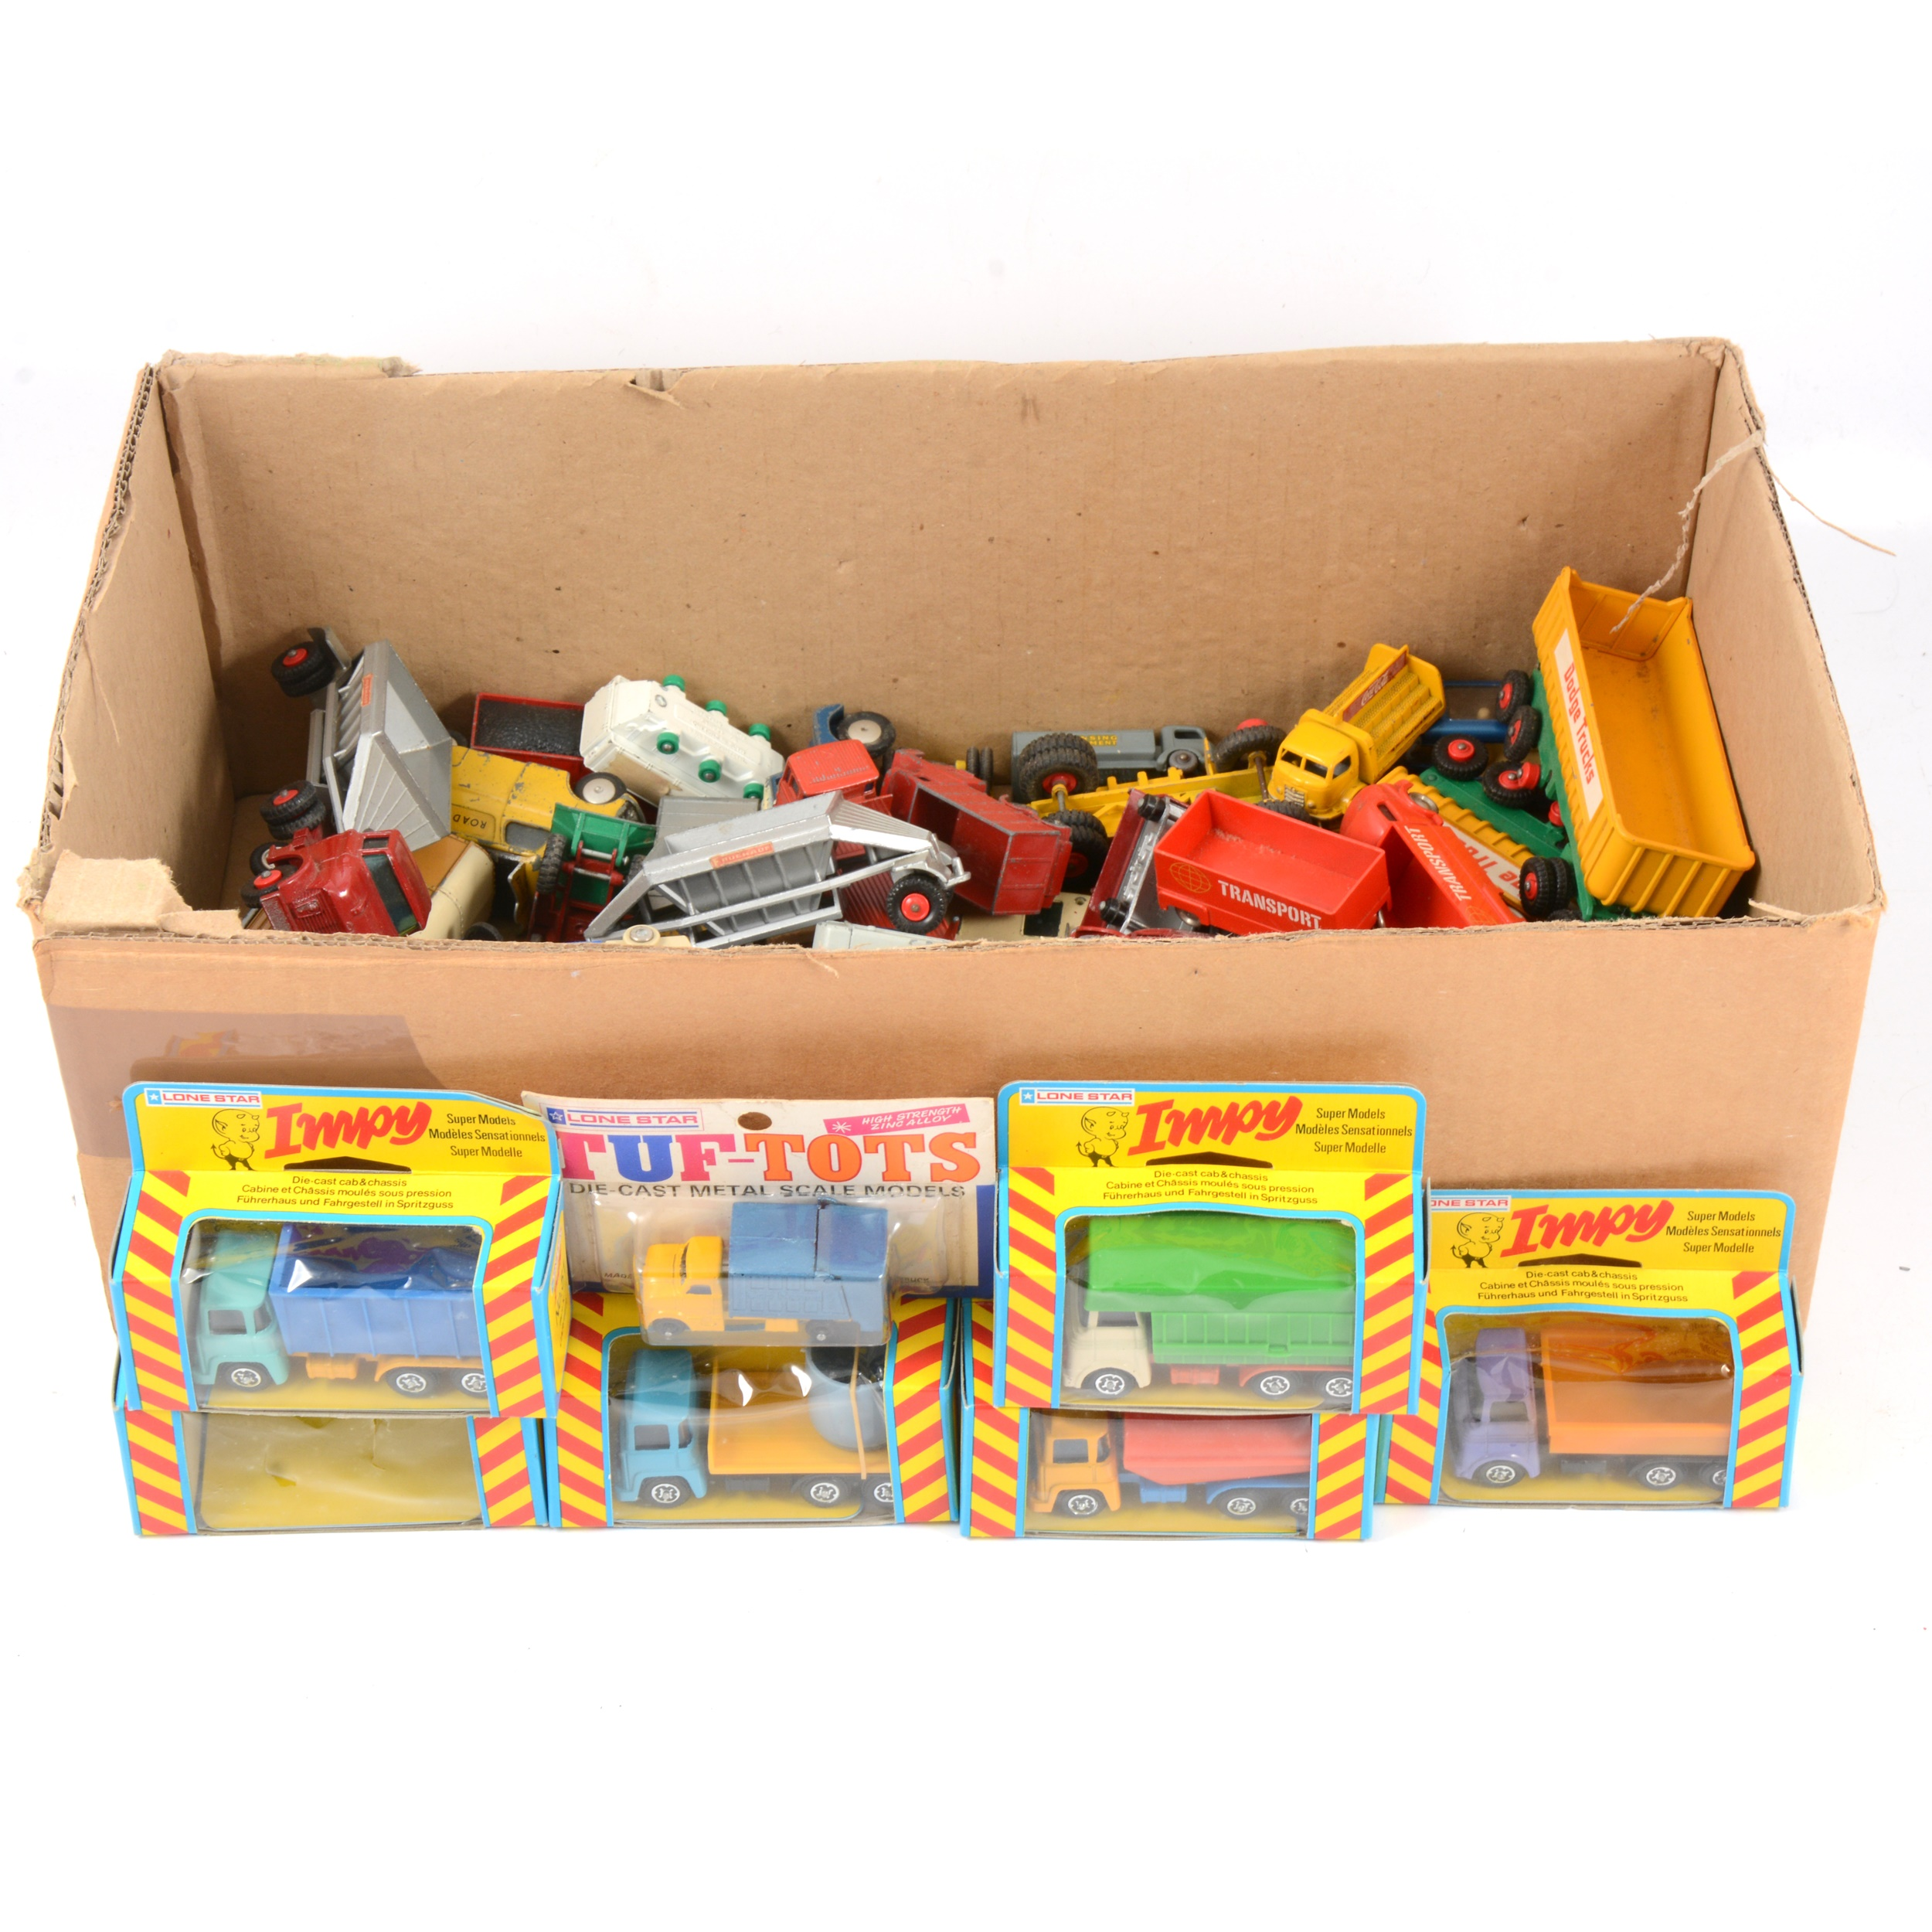 Loose die-cast models and vehicles